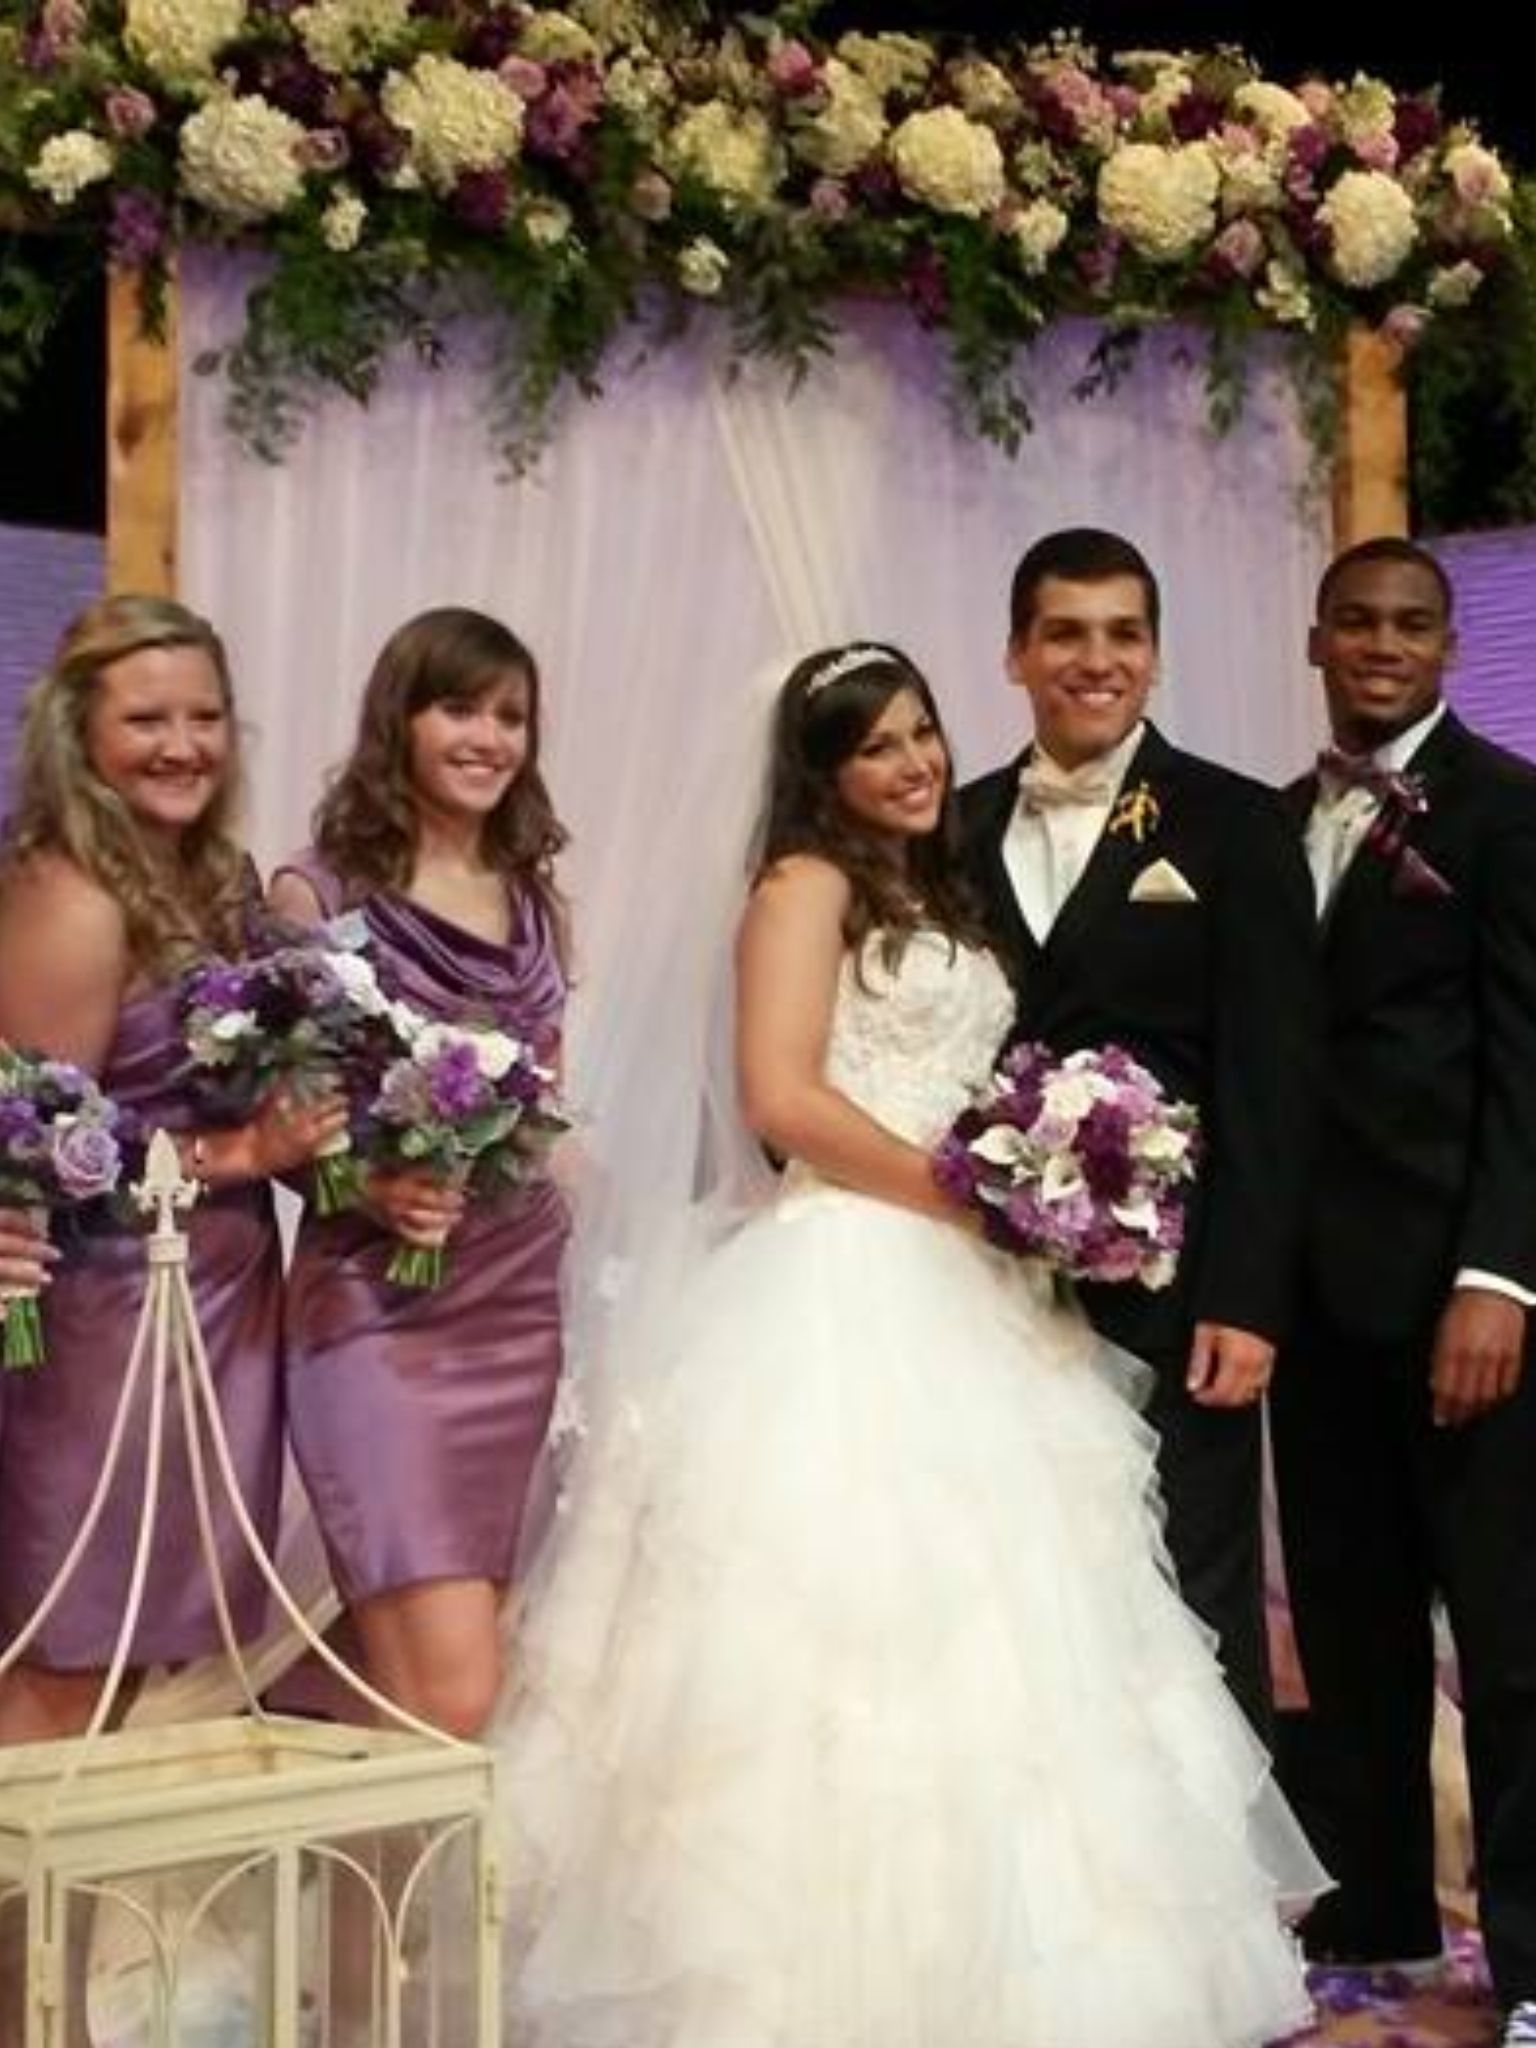 Matronmaid of honor and best man with bride and groom bartadiaz